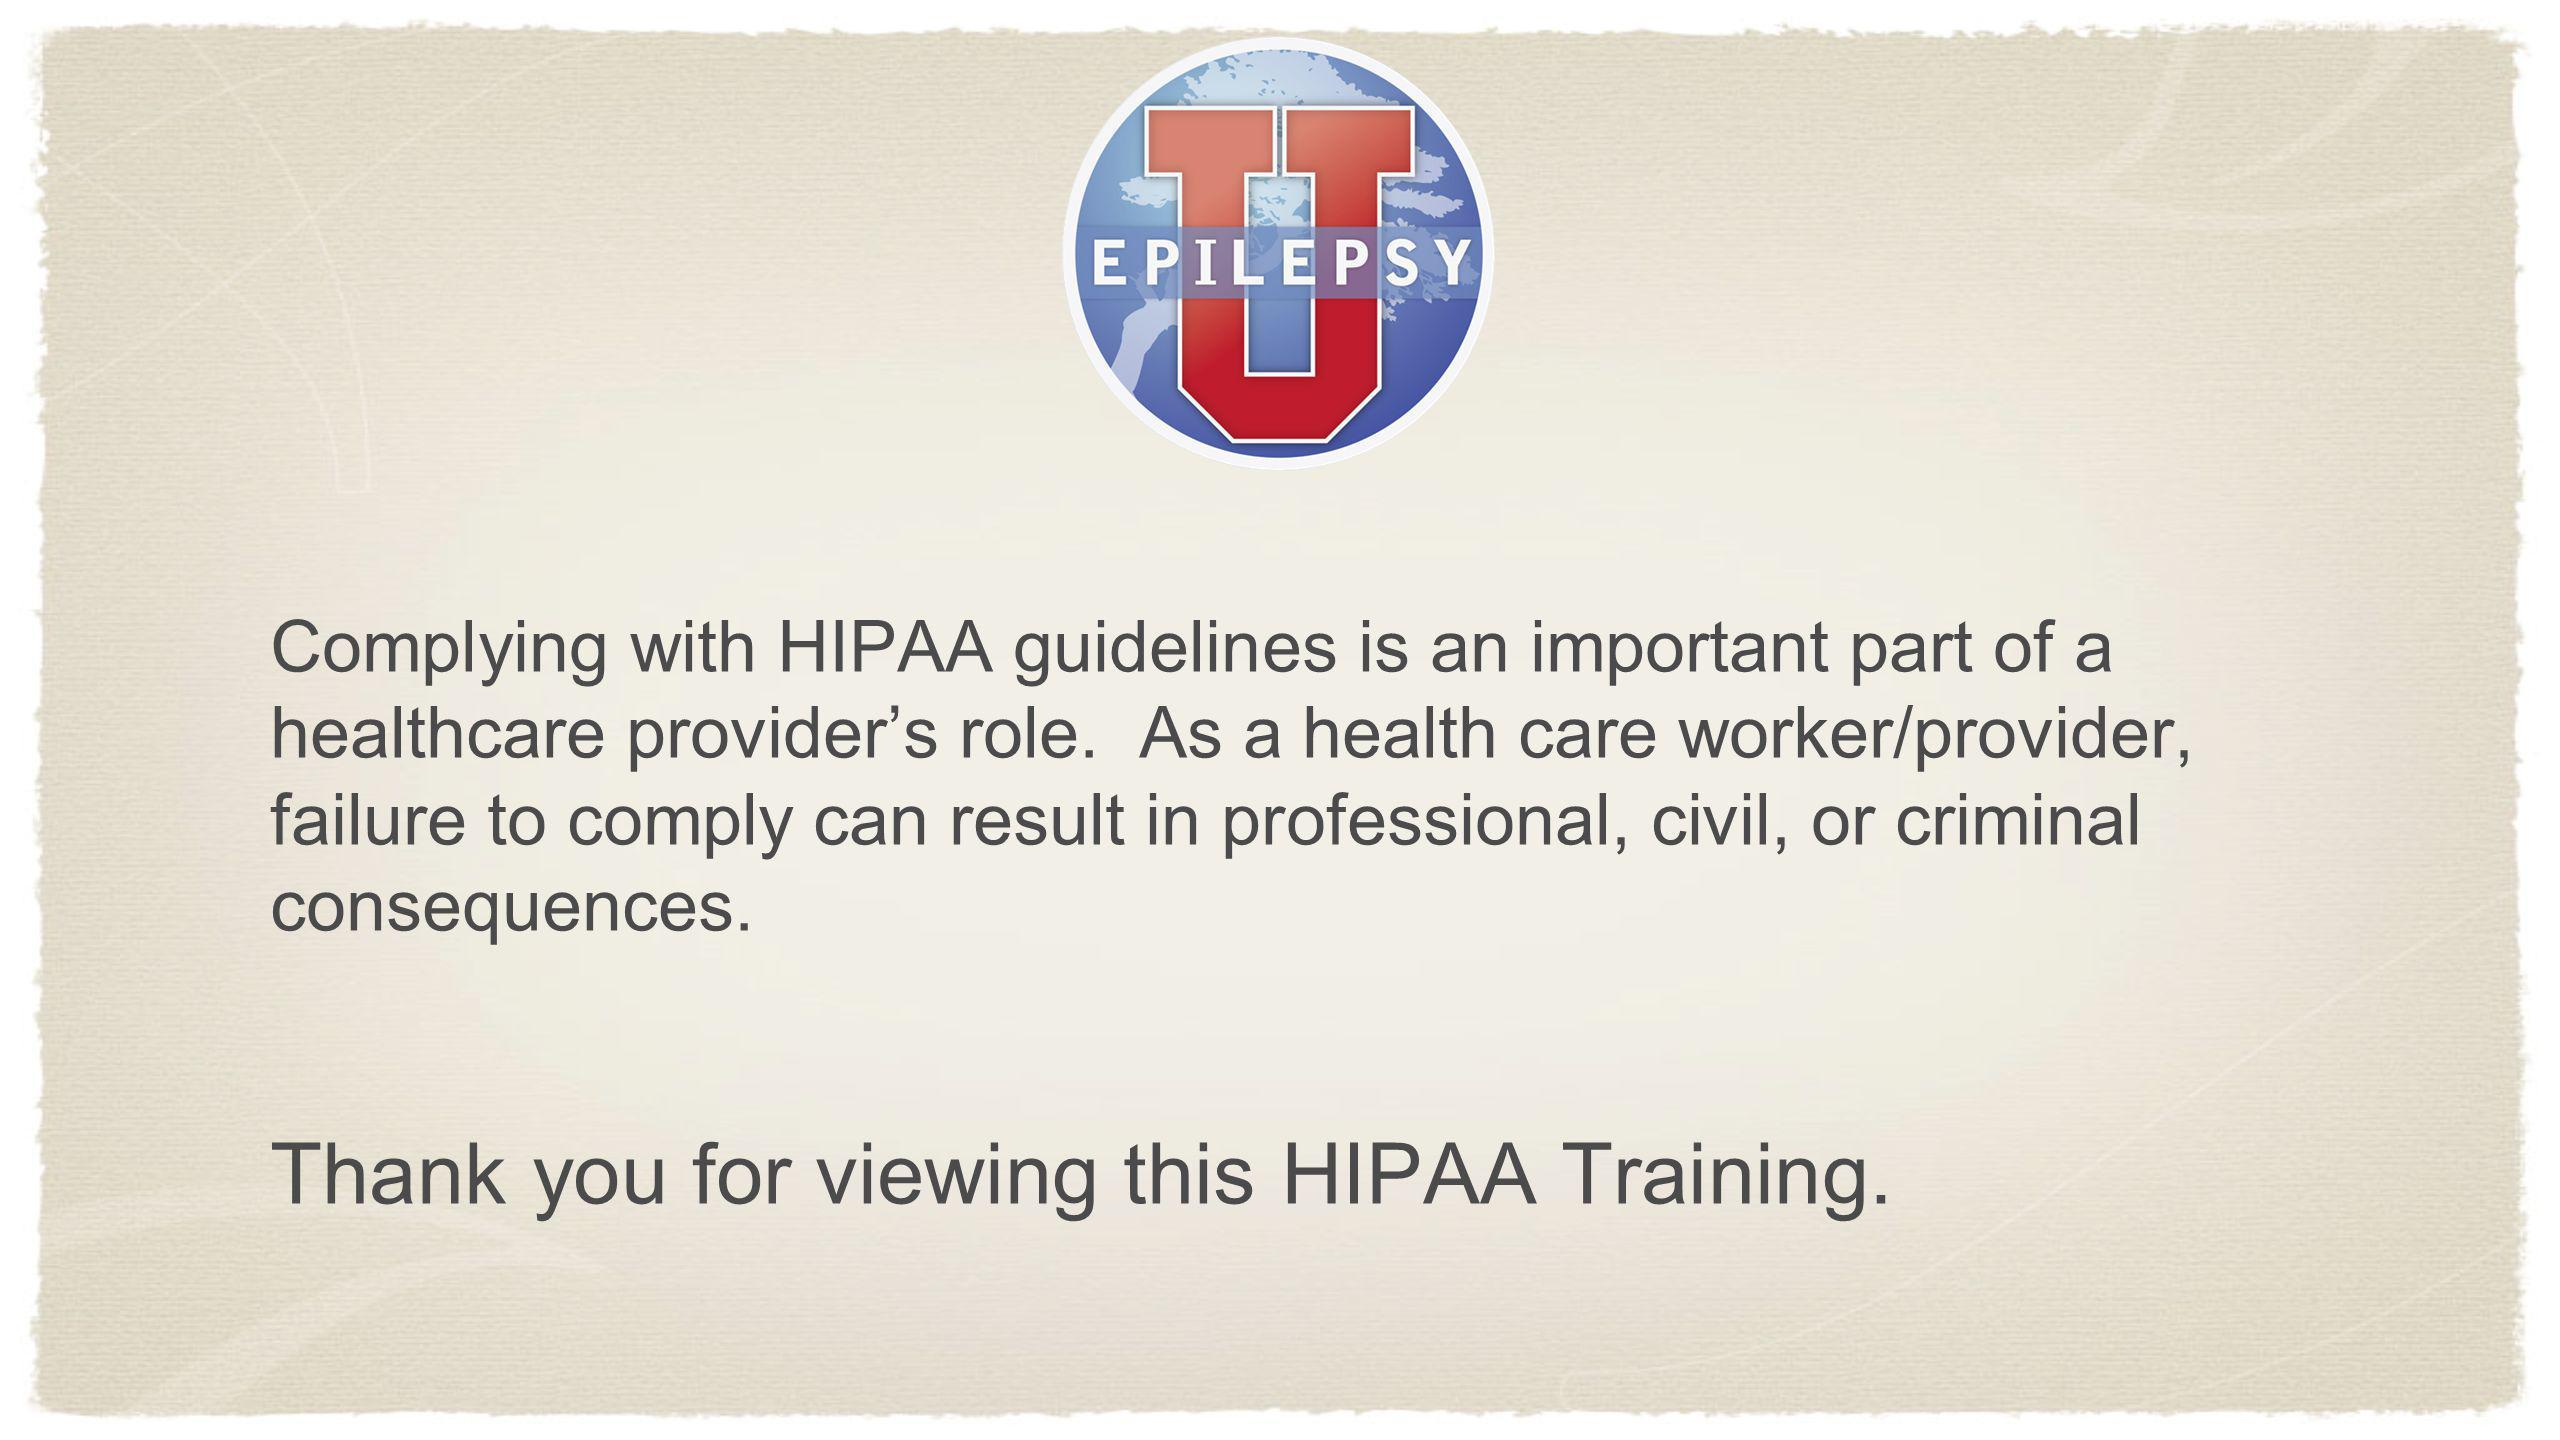 Thank you for viewing this HIPAA Training.